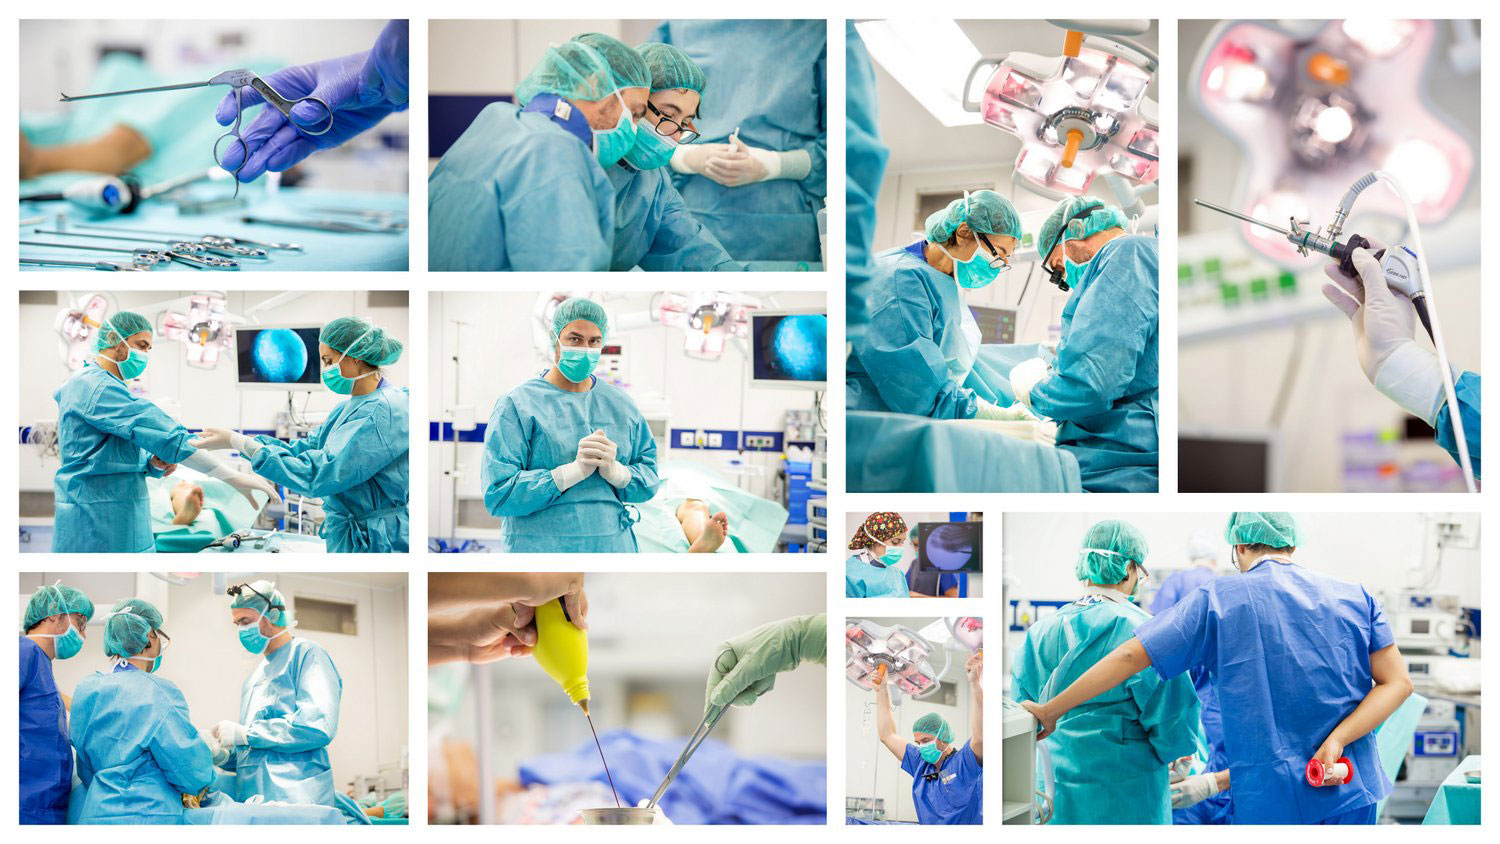 photography marbella hospital corporate images cenyt